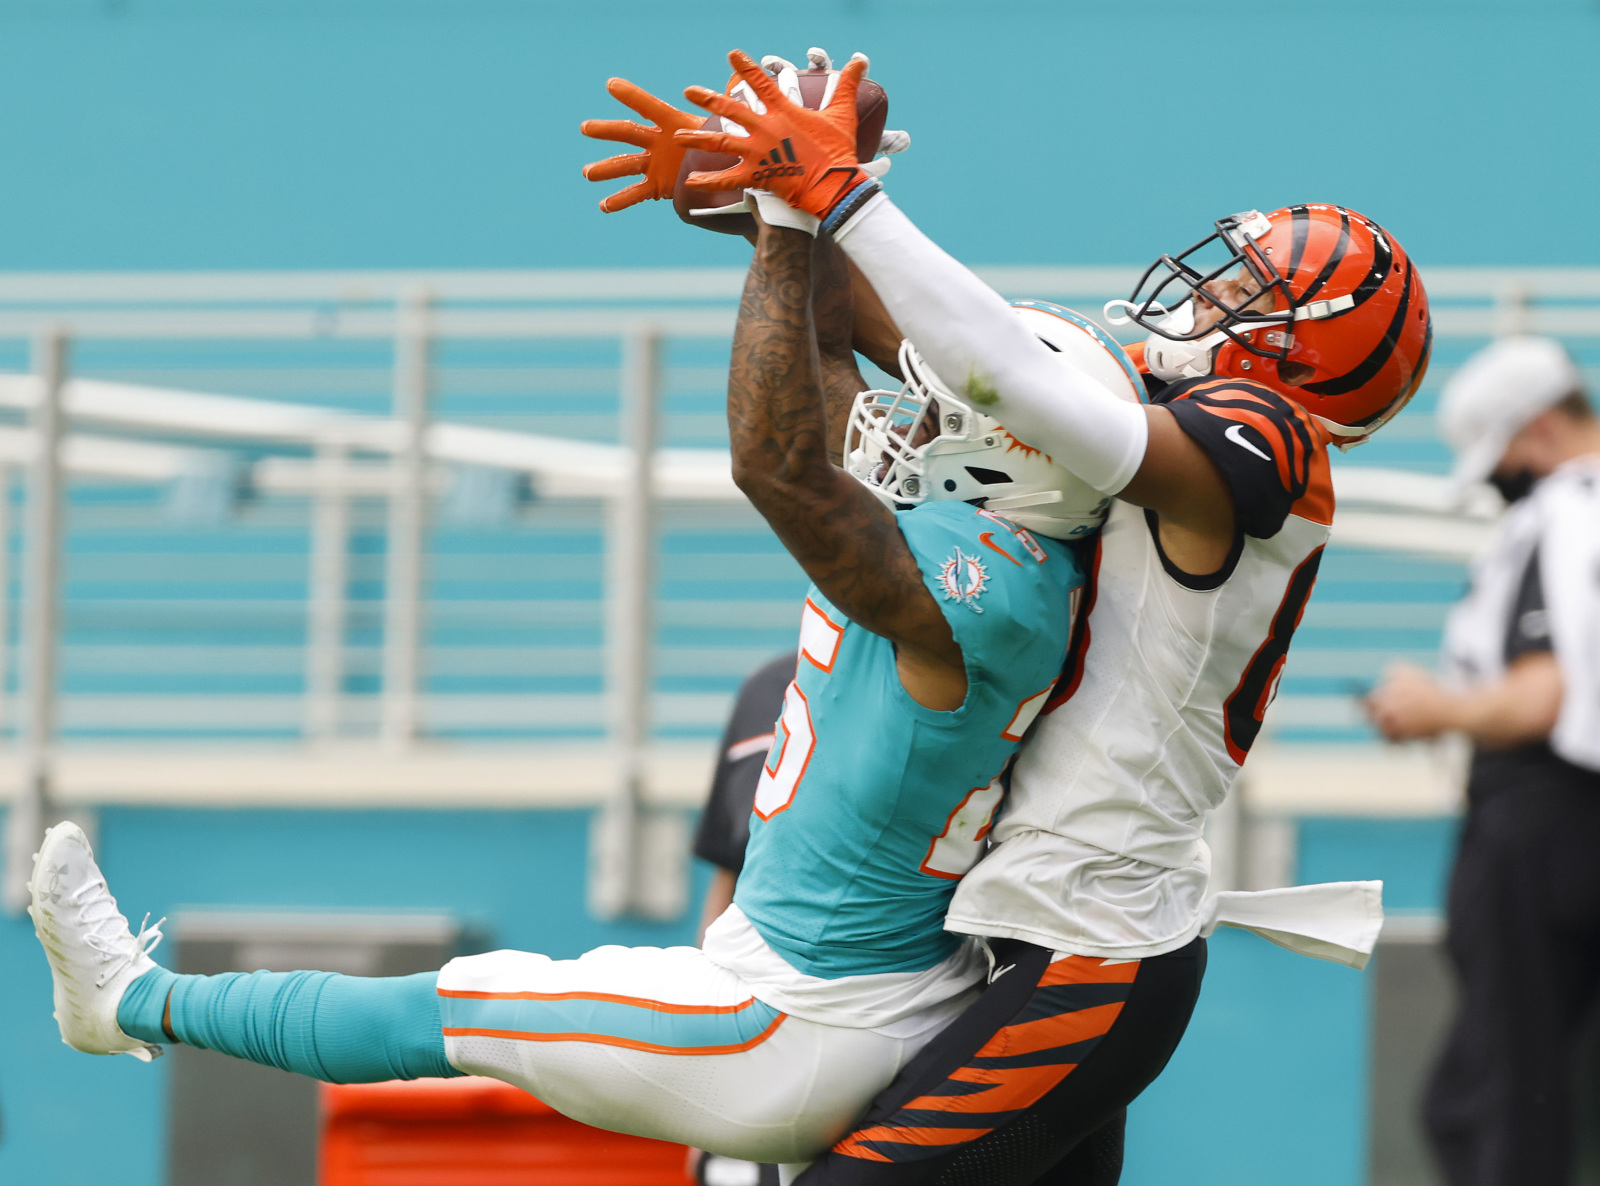 Tyler Boyd, Xavien Howard ejected after punches thrown in Bengals-Dolphins